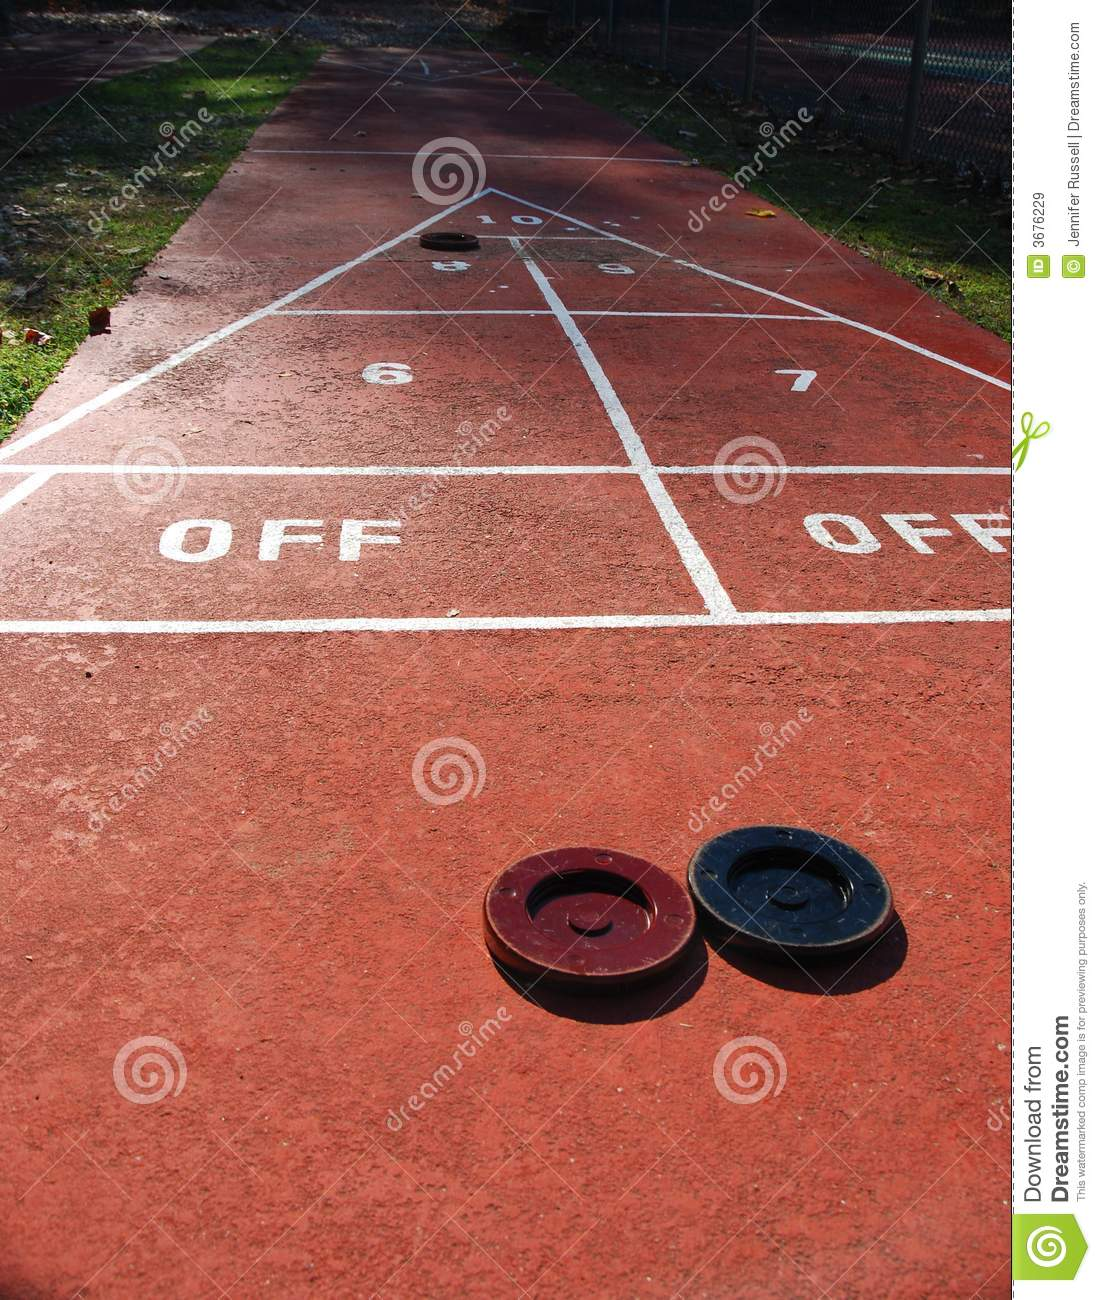 Download Shuffleboard immagine stock. Immagine di triangolo, sfida - 3676229